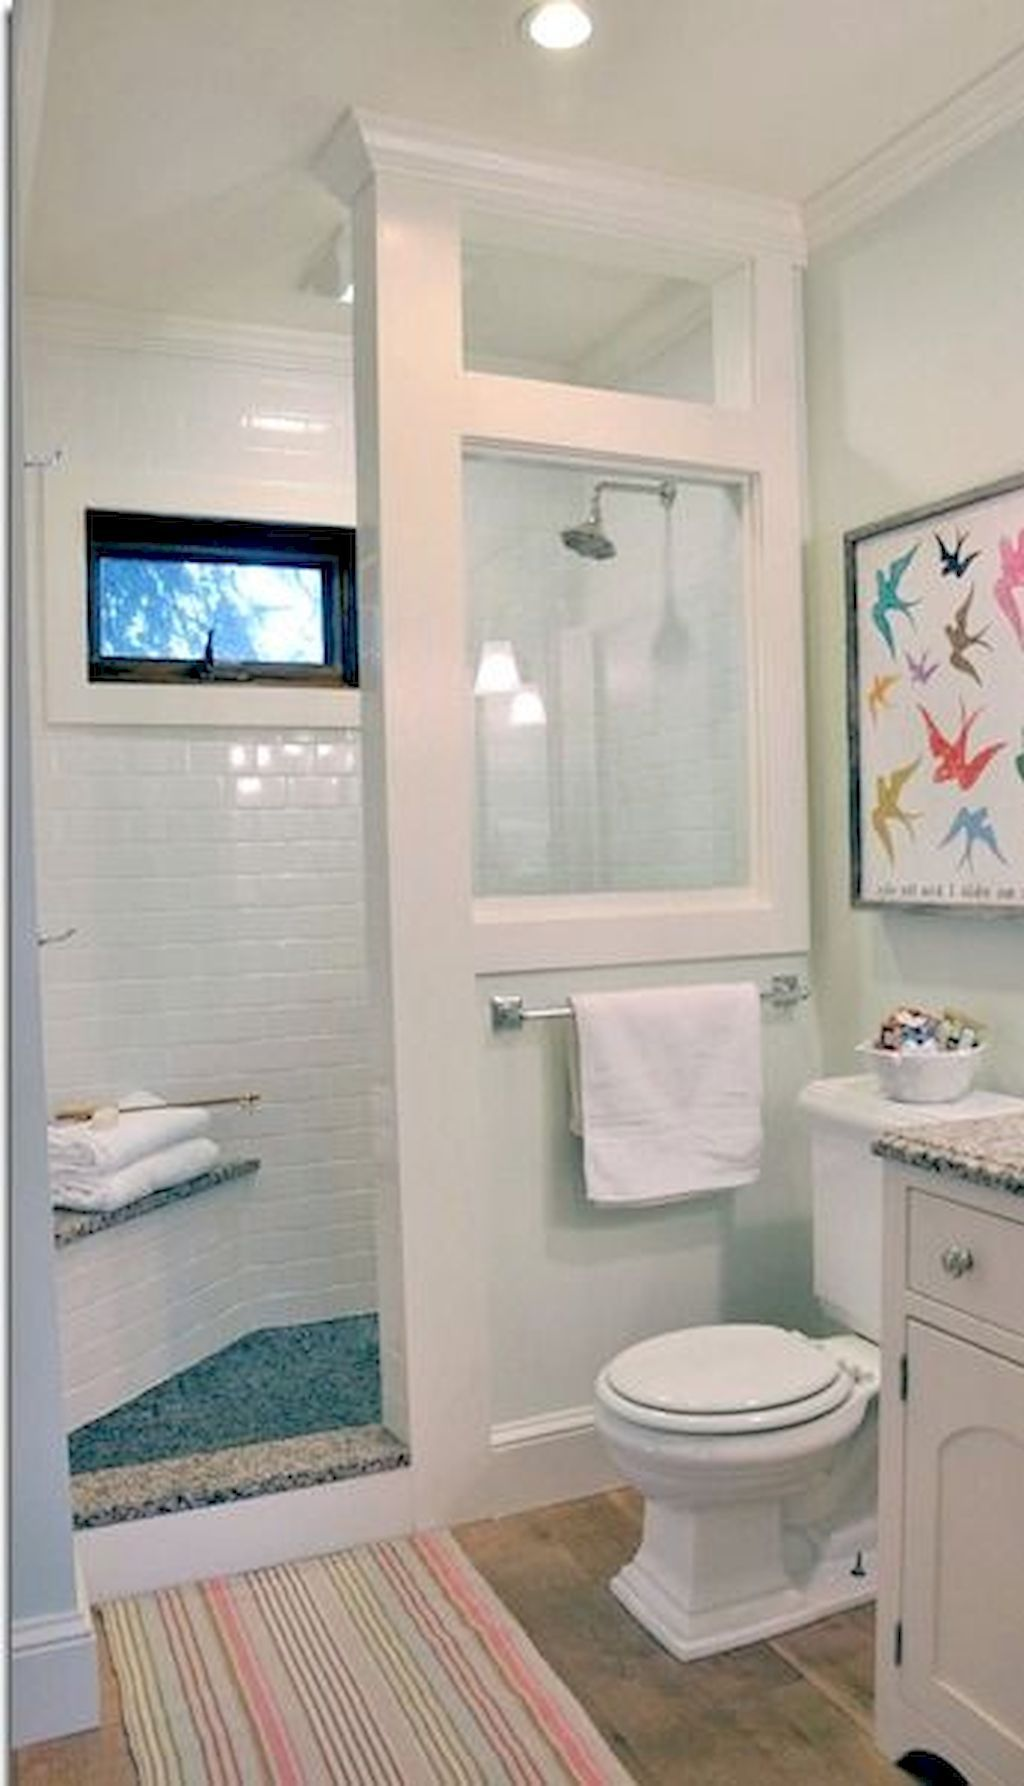 beautiful farmhouse bathroom ideas 24 with images on beautiful farmhouse bathroom shower decor ideas and remodel an extraordinary design id=34811